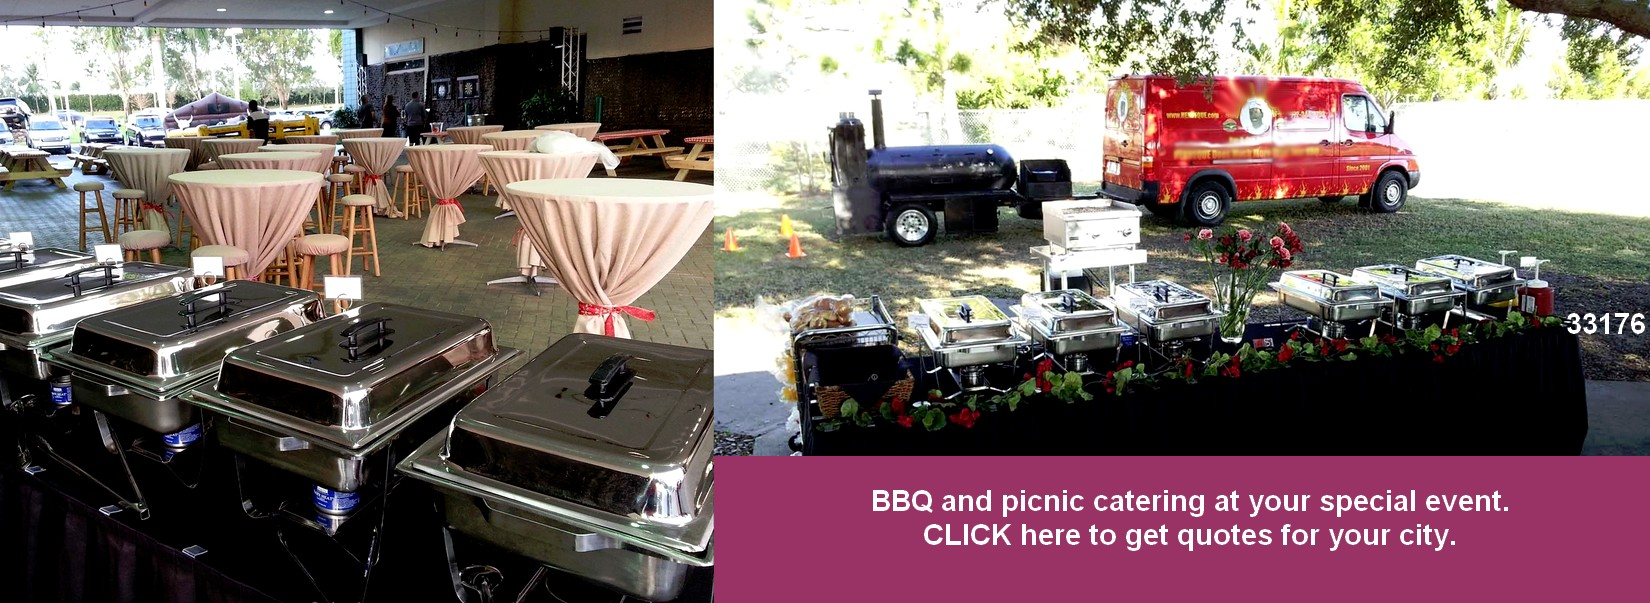 bbq catering 2 on site catering designs 33176